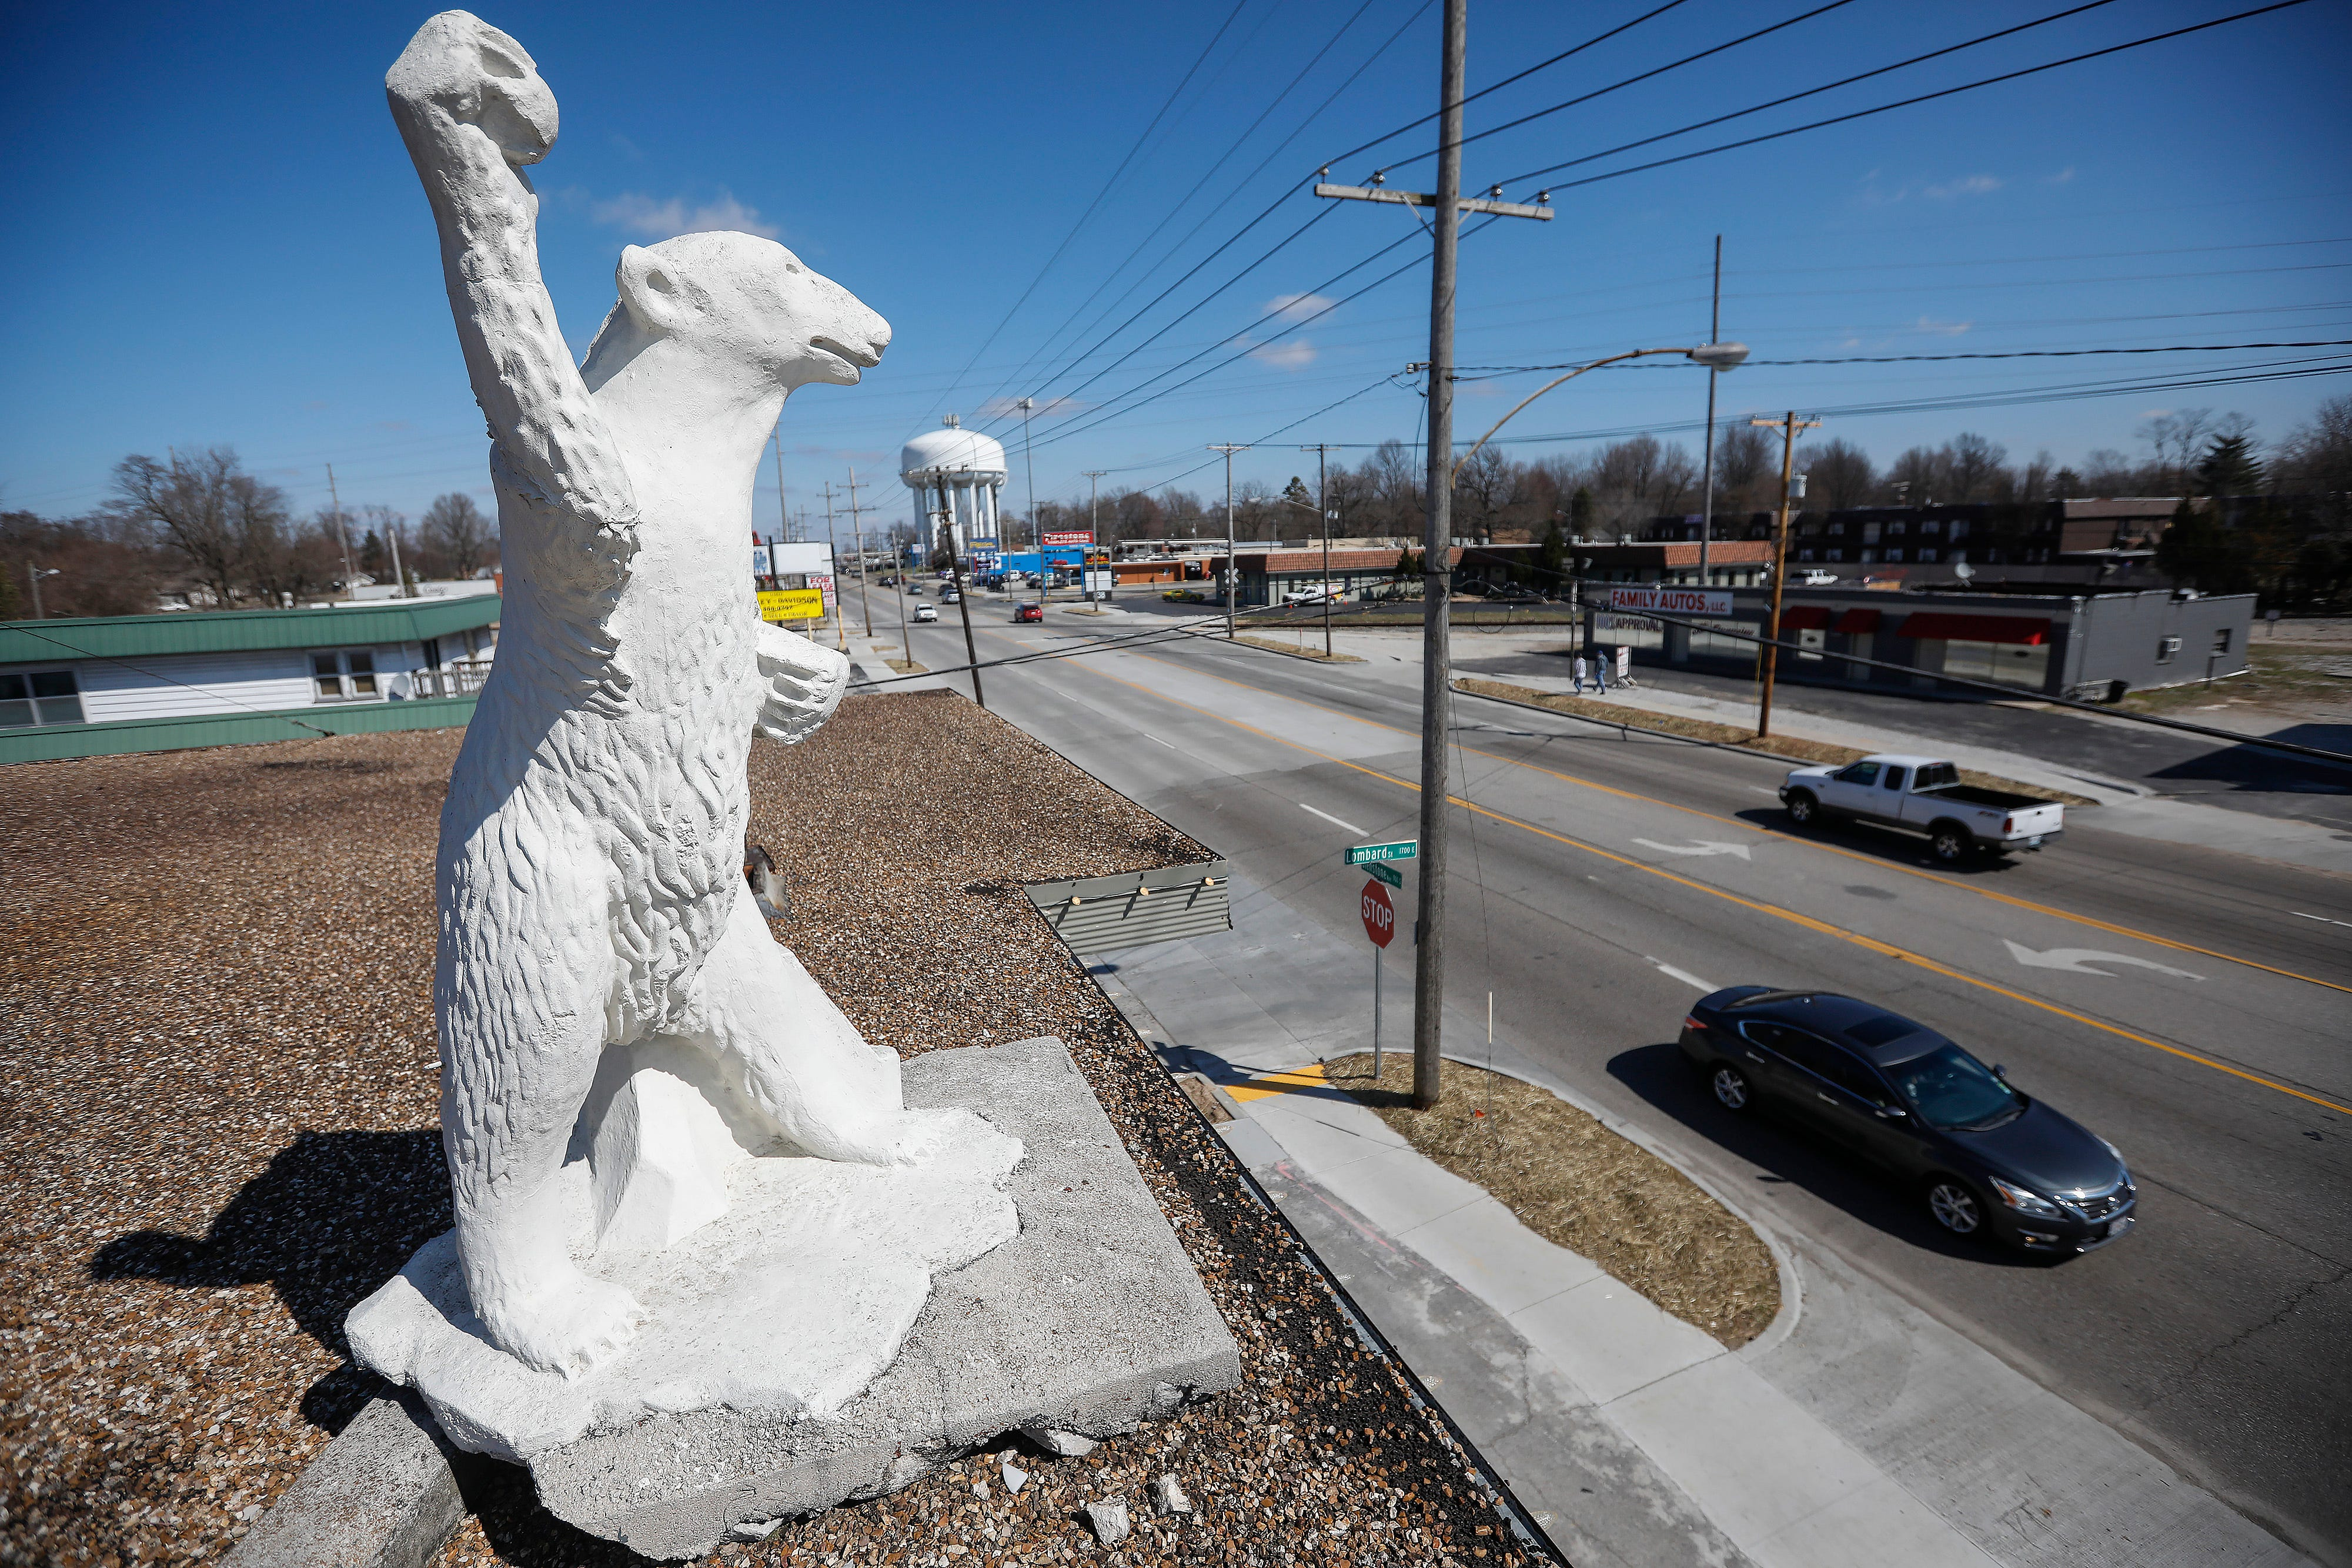 A snowball-throwing bear looks down over Glenstone Avenue from the roof of McDaniel Furs.